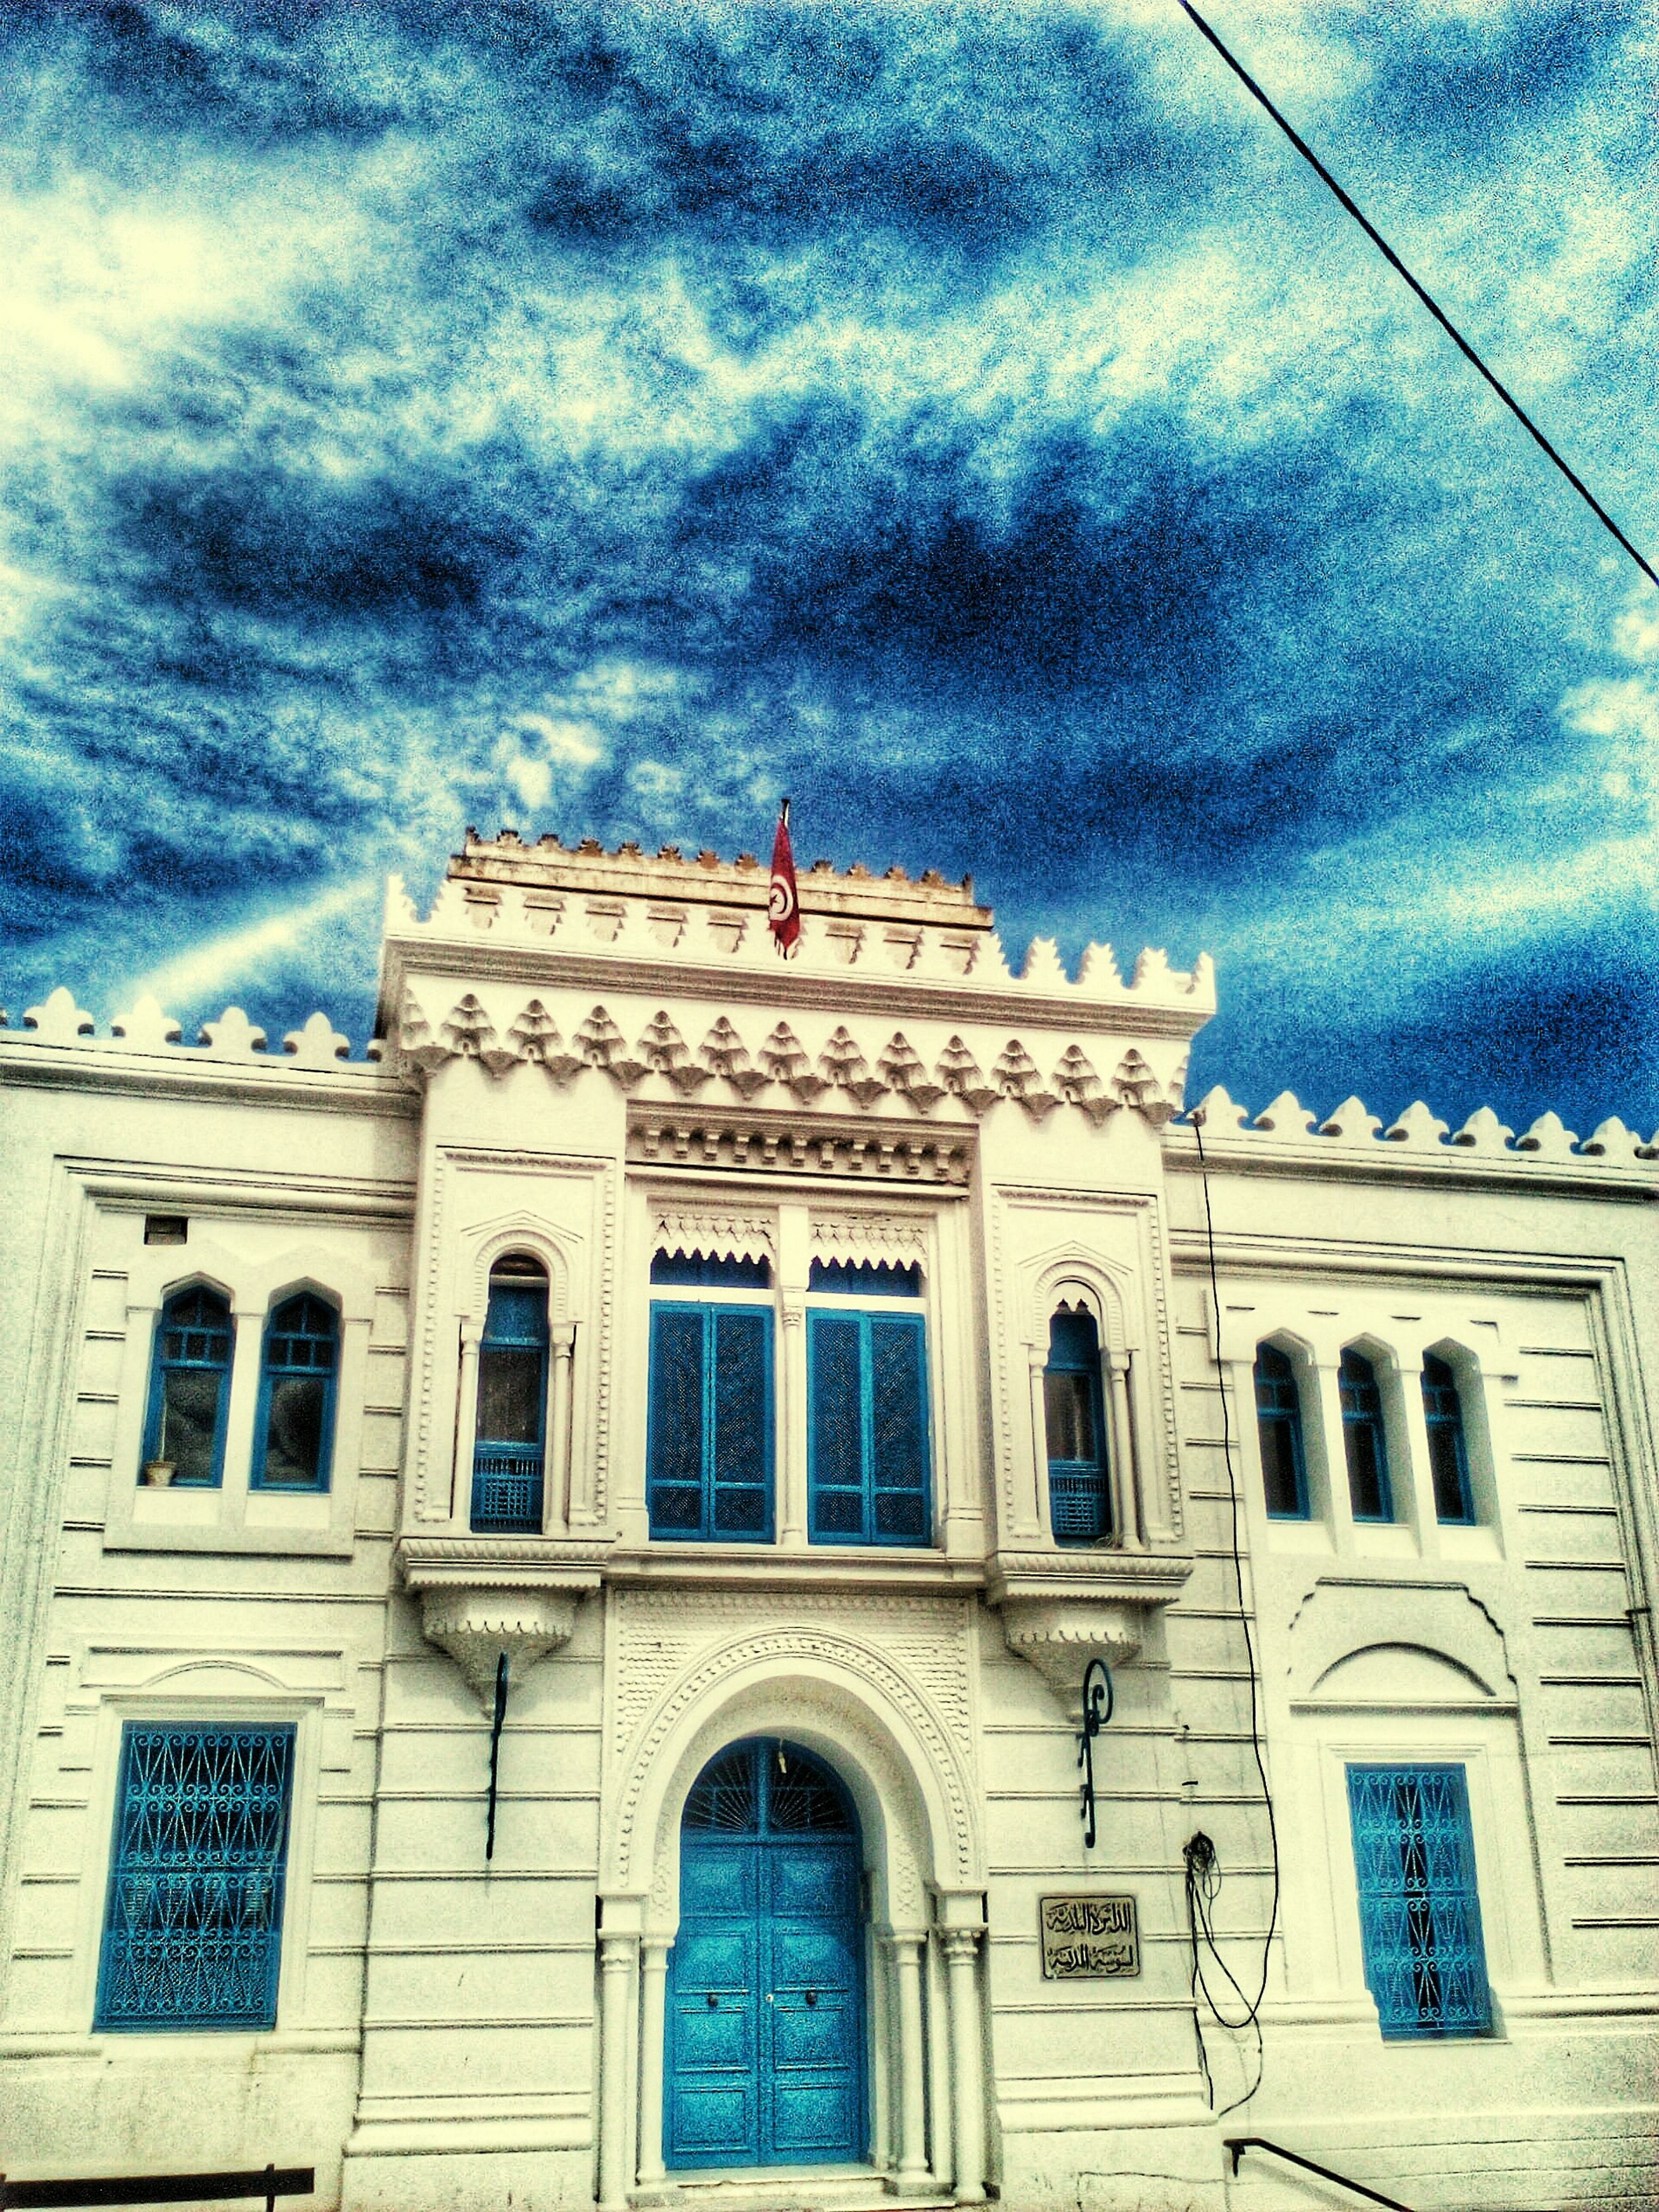 architecture, building exterior, built structure, sky, low angle view, cloud - sky, arch, window, cloudy, cloud, facade, church, blue, building, outdoors, day, religion, history, no people, old